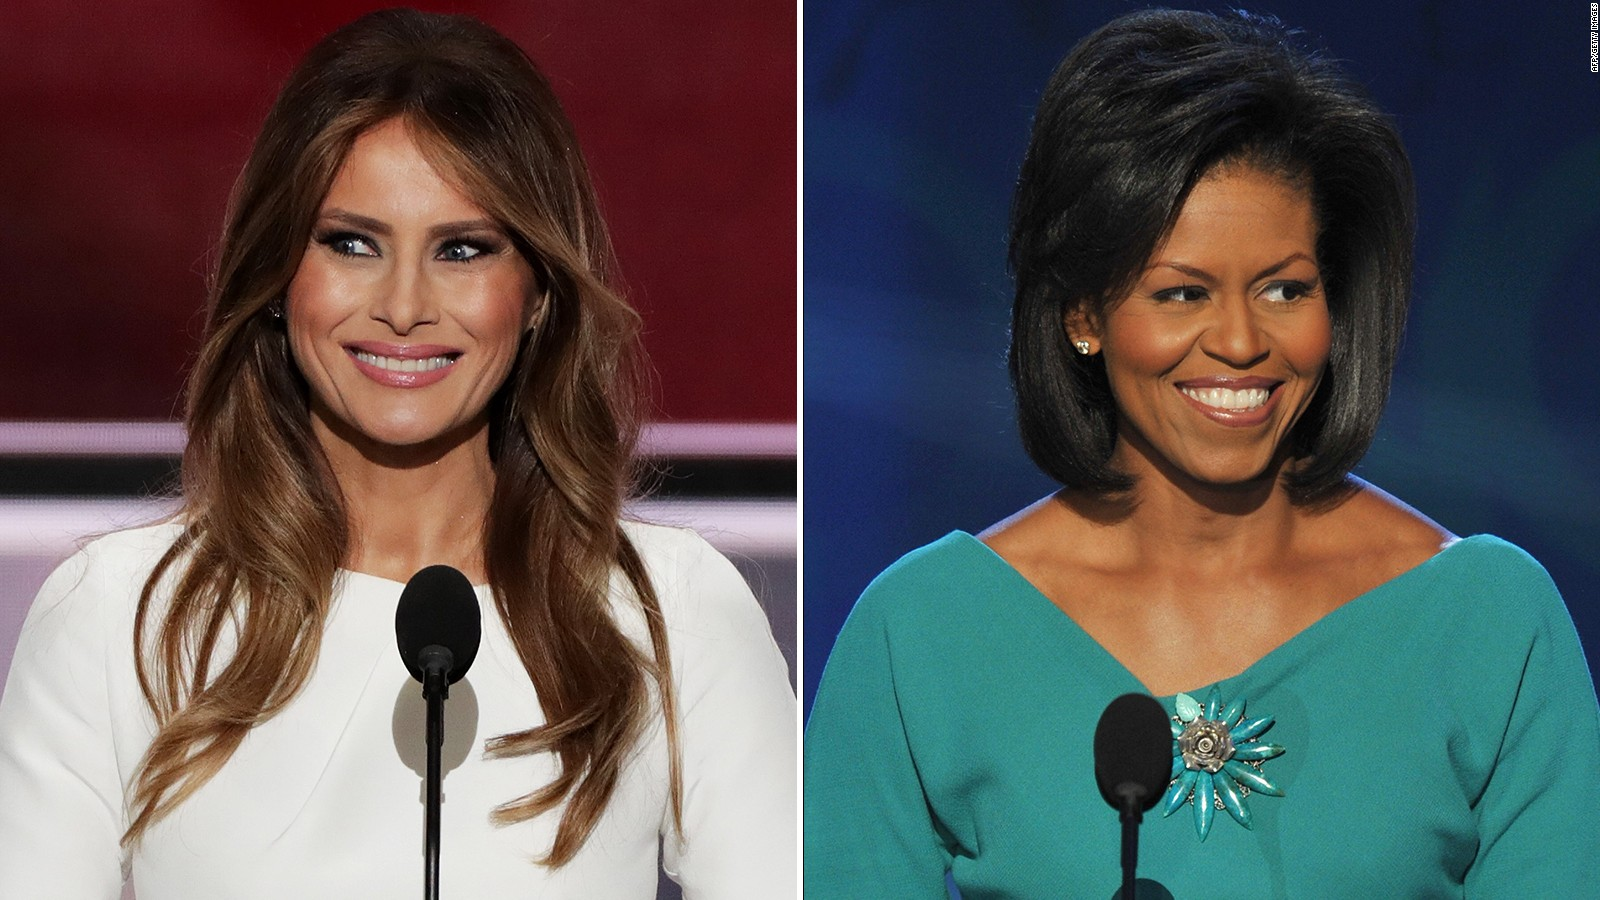 Melania Trump plagiarism controversy: Campaign tries to move on.